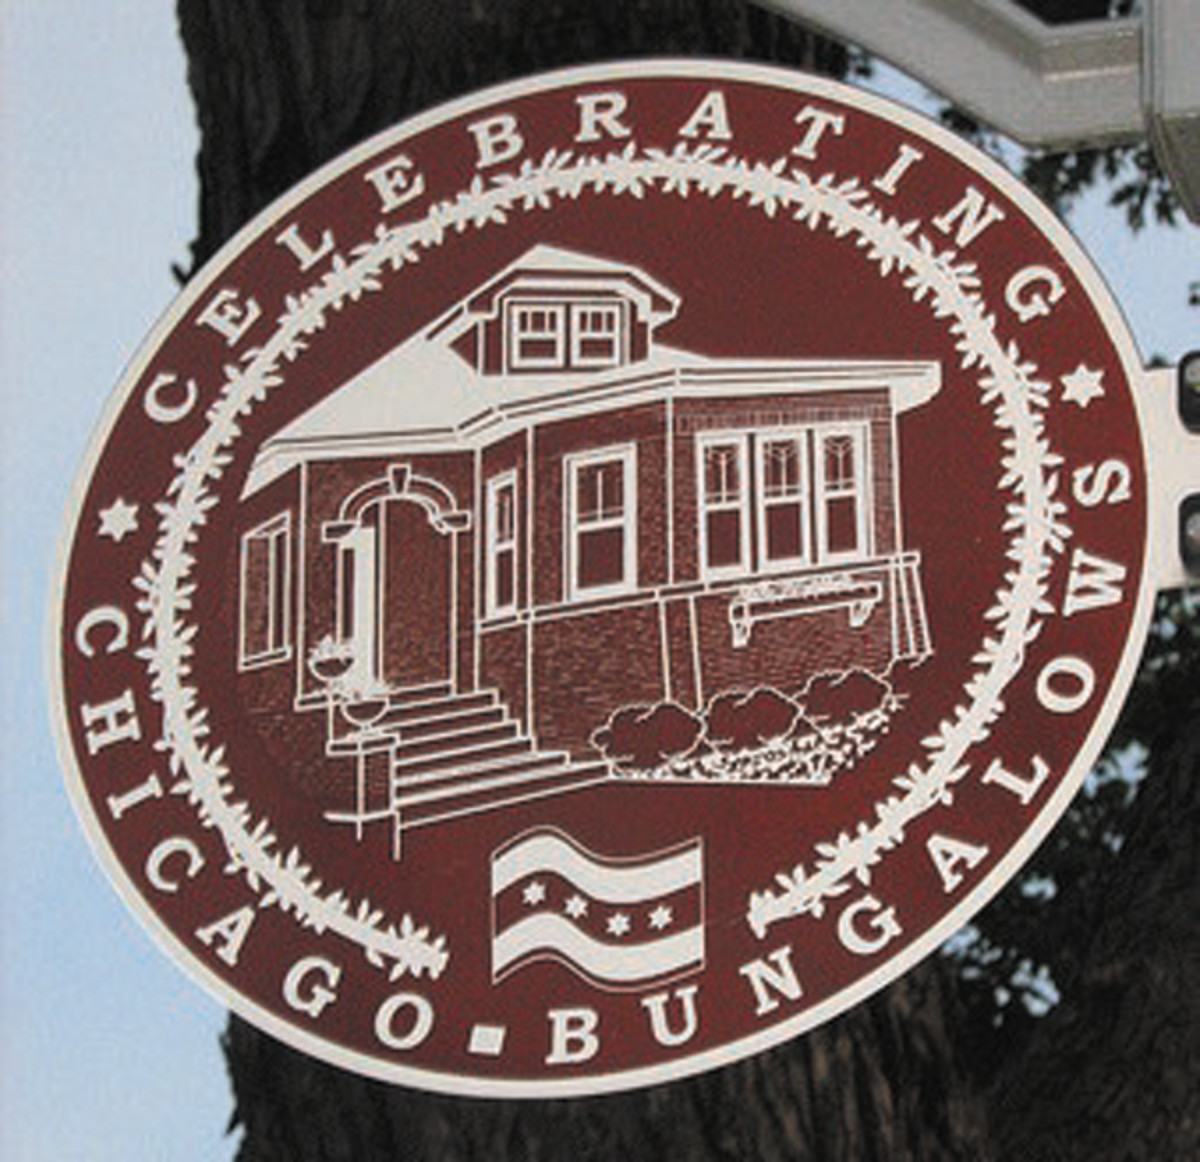 The red brick bungalow is a symbol of Chicago.